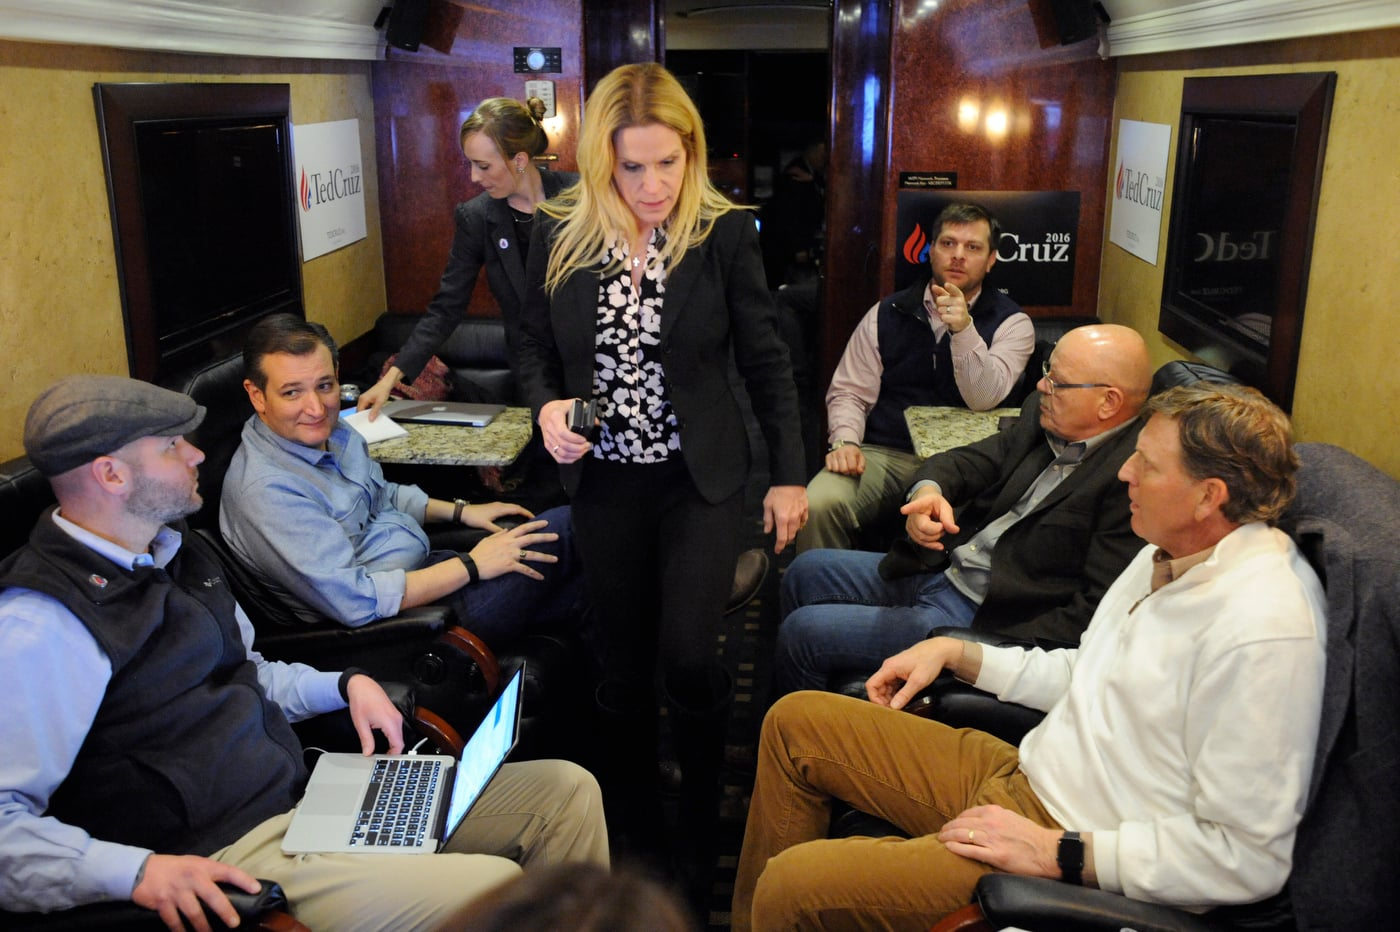 U.S. Republican presidential candidate Ted Cruz (2L) speaks with his campaign staff and advisors including political strategist Jason Johnson (L), national press secretary Catherine Frazier (3L), senior advisor Alice Stewart (C), and travel aide Bruce Redden (3R) on the campaign bus in Goldfield, Iowa January 7, 2016. REUTERS/Mark Kauzlarich